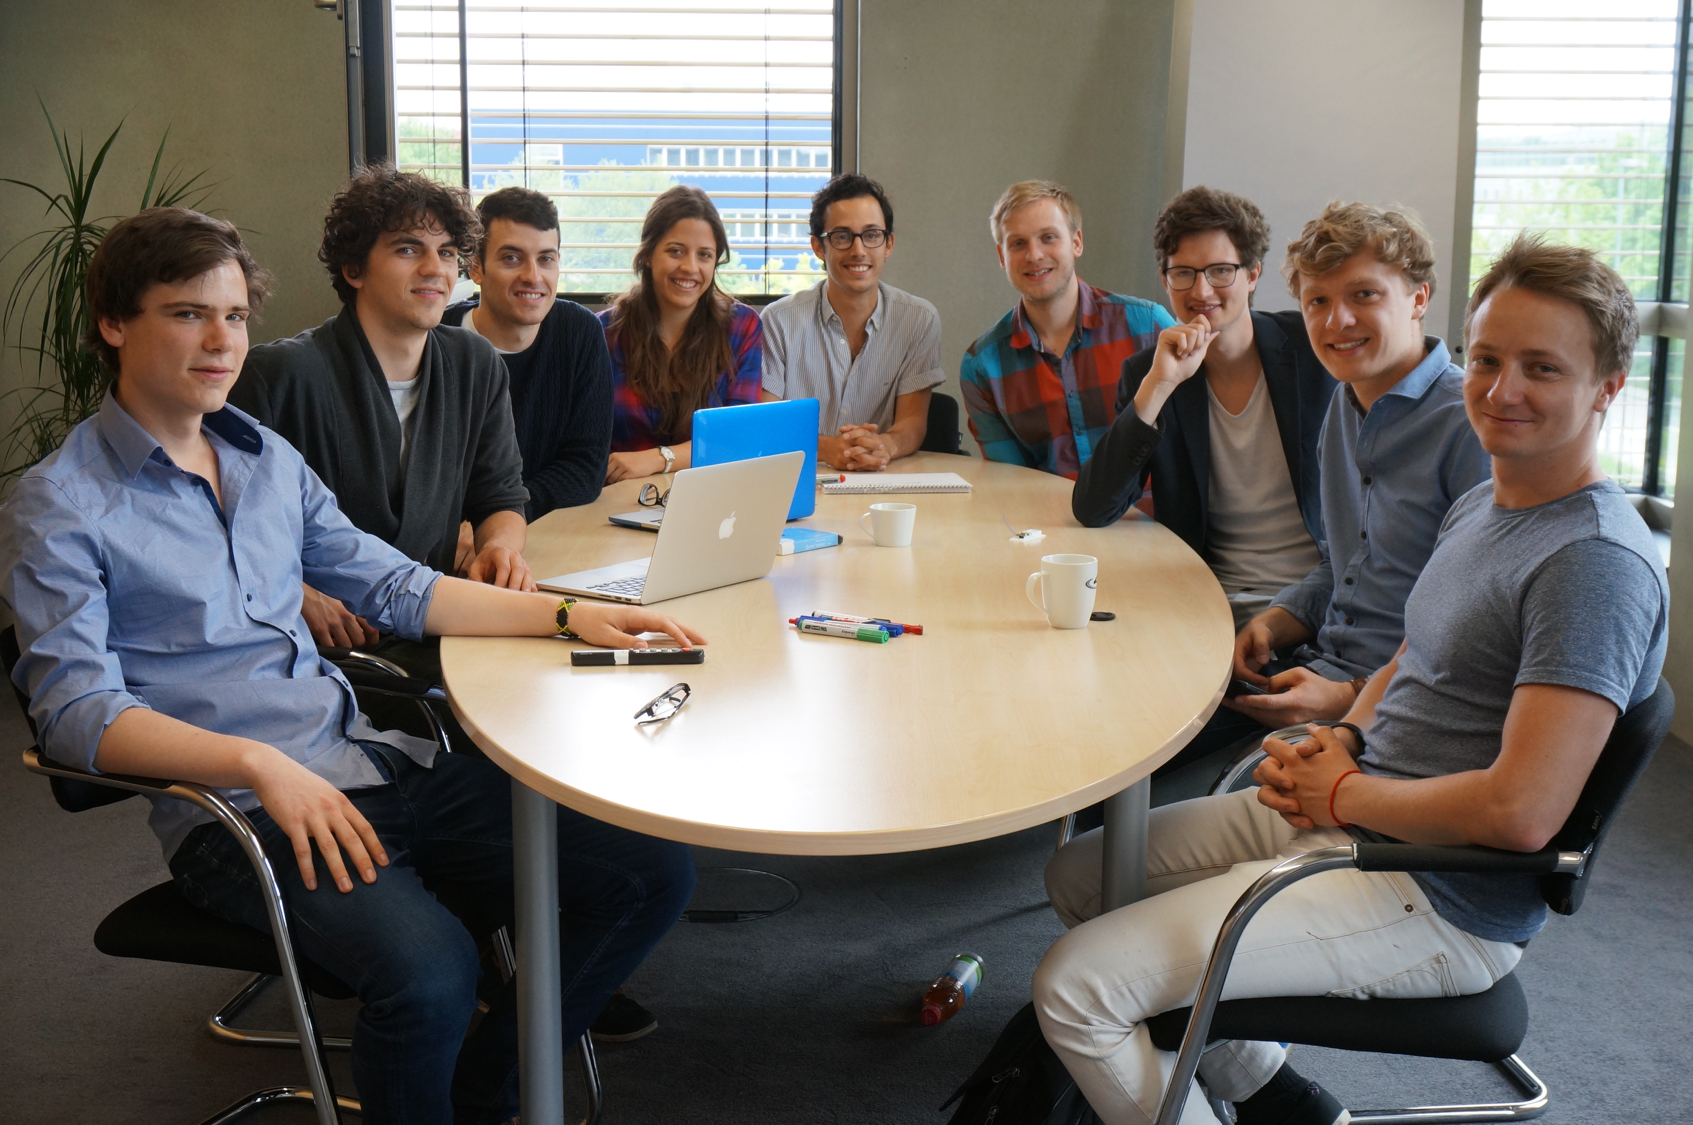 The founding team of ParkHere